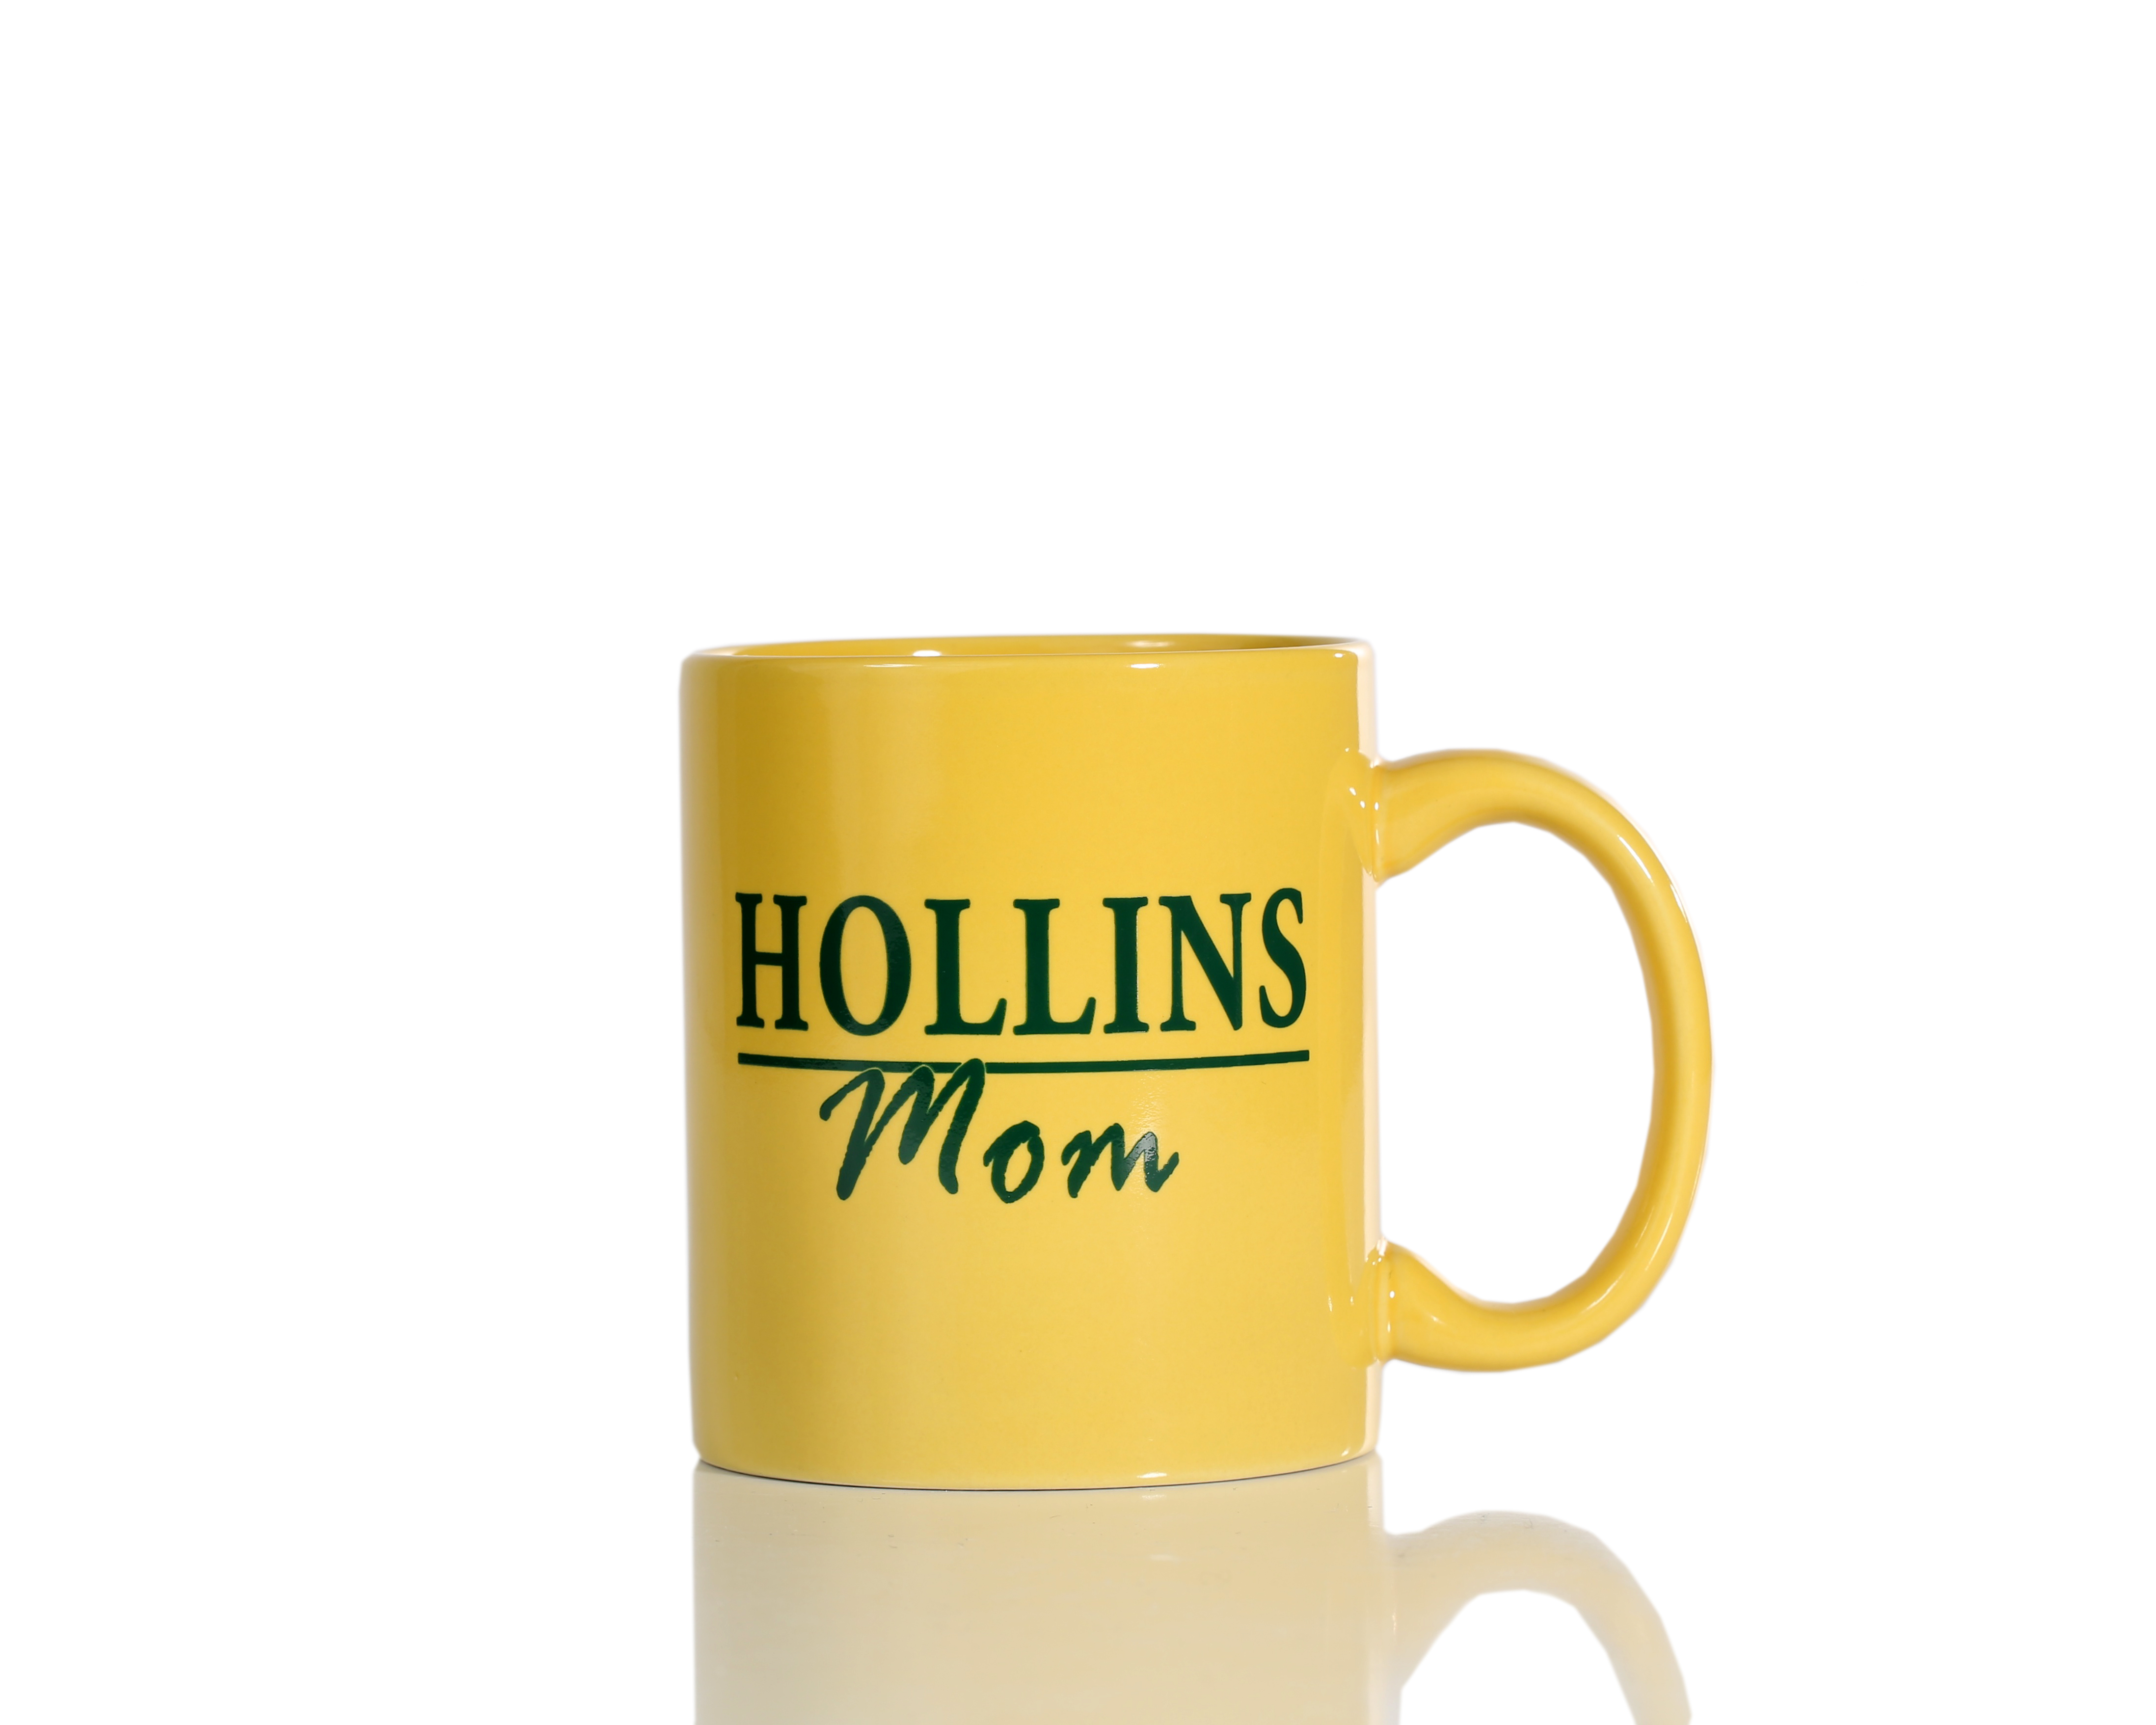 Coffee mug – Hollins Mom